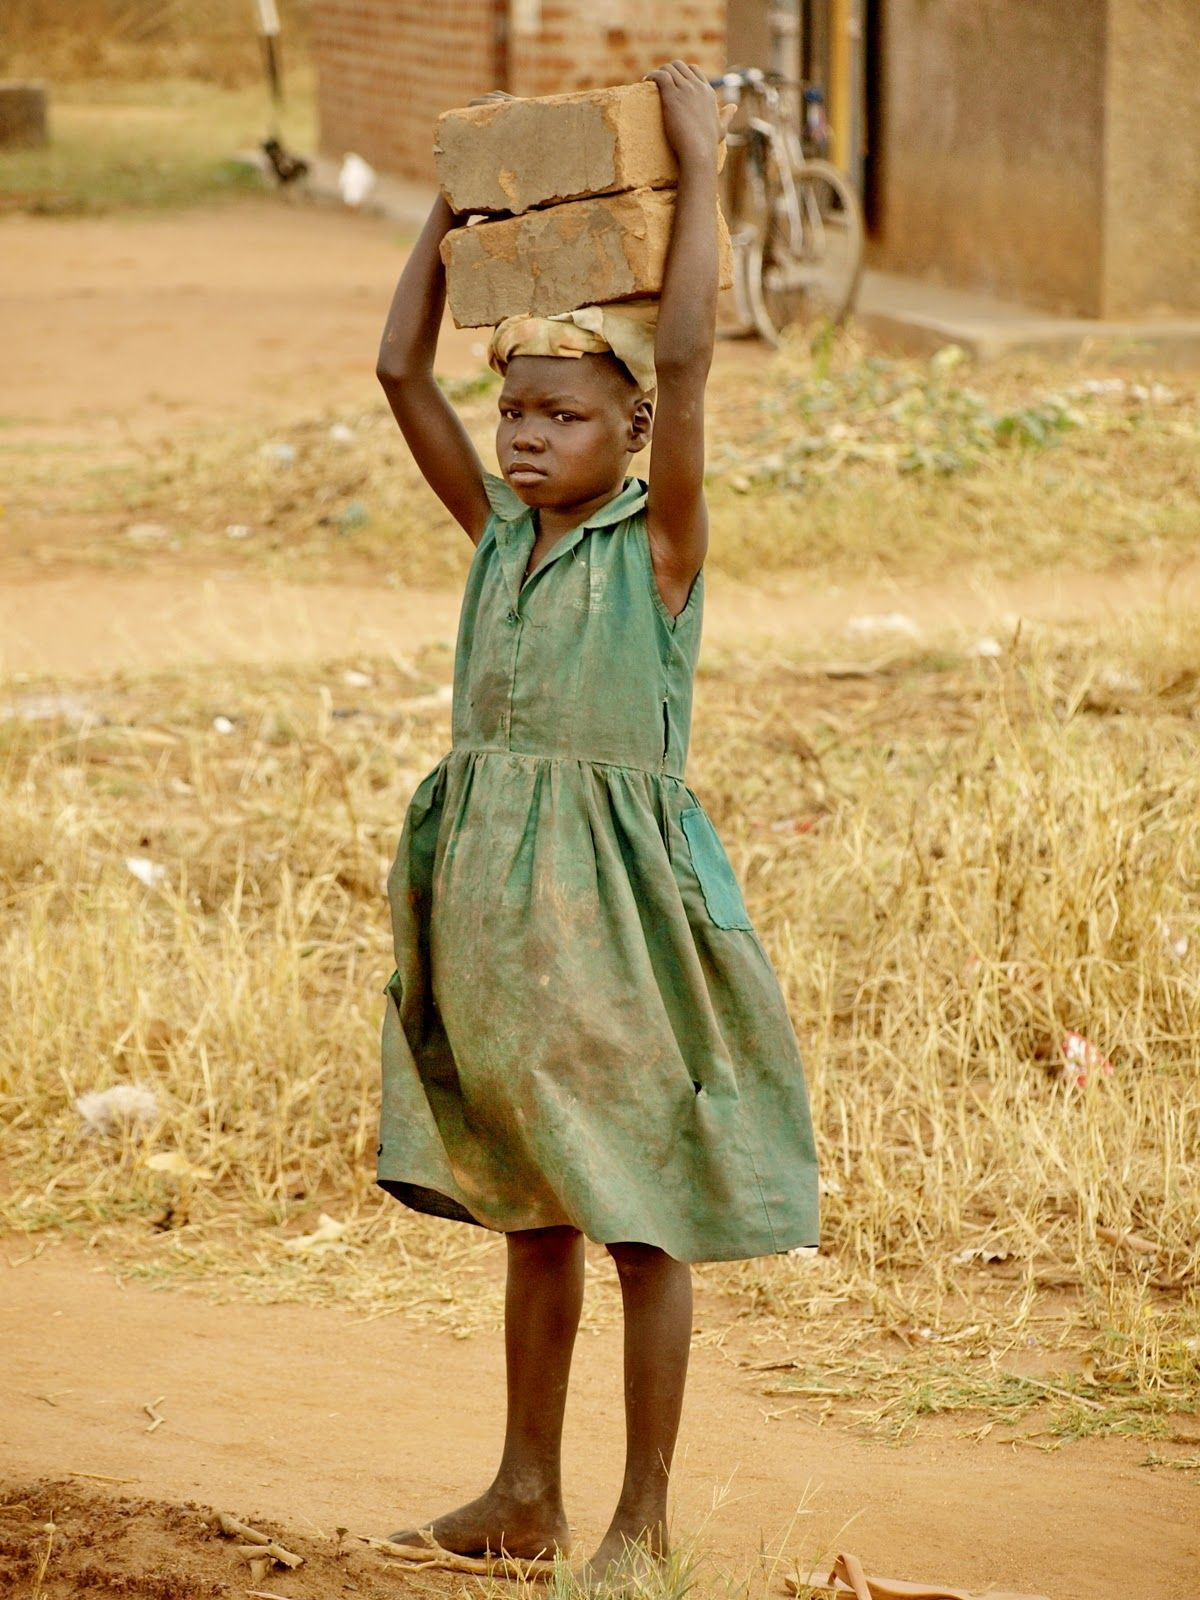 essay indian child labor Child labor in india essaysindia has many crises affecting it at this time among them is the important and sad issue of child labor there are approximately 60 to 115 million child laborers in india (human rights watch, 1996).